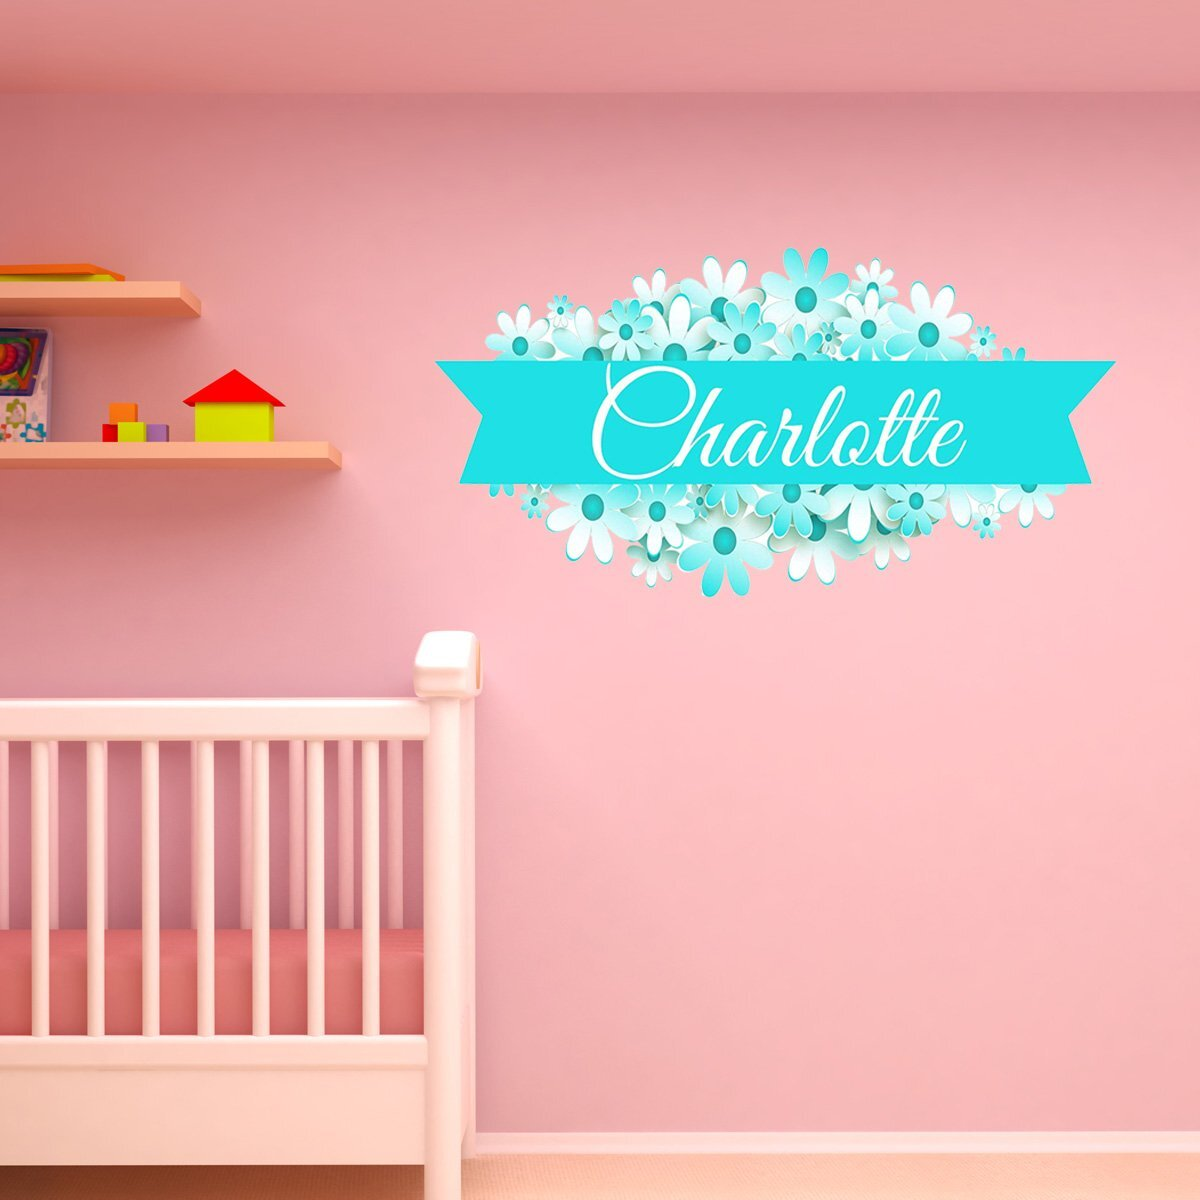 Peel Stick Plastic Personalized Kids Wall Art You Ll Love In 2020